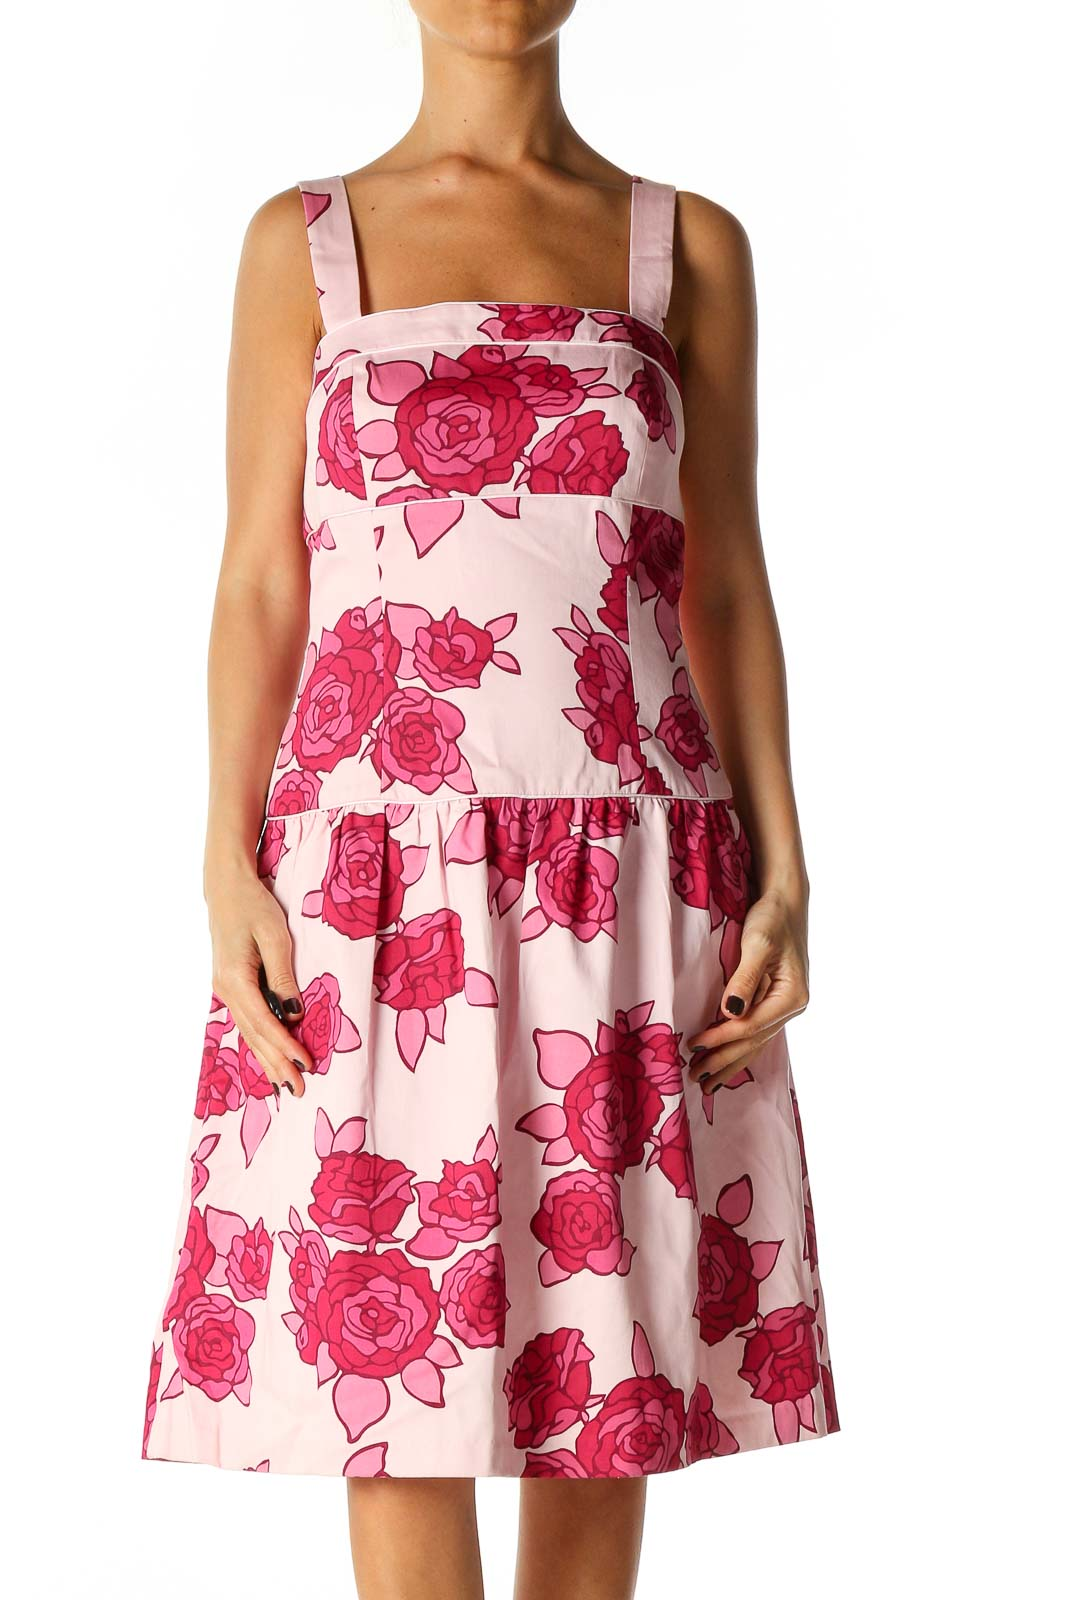 Pink Floral Print Casual Fit & Flare Dress Front